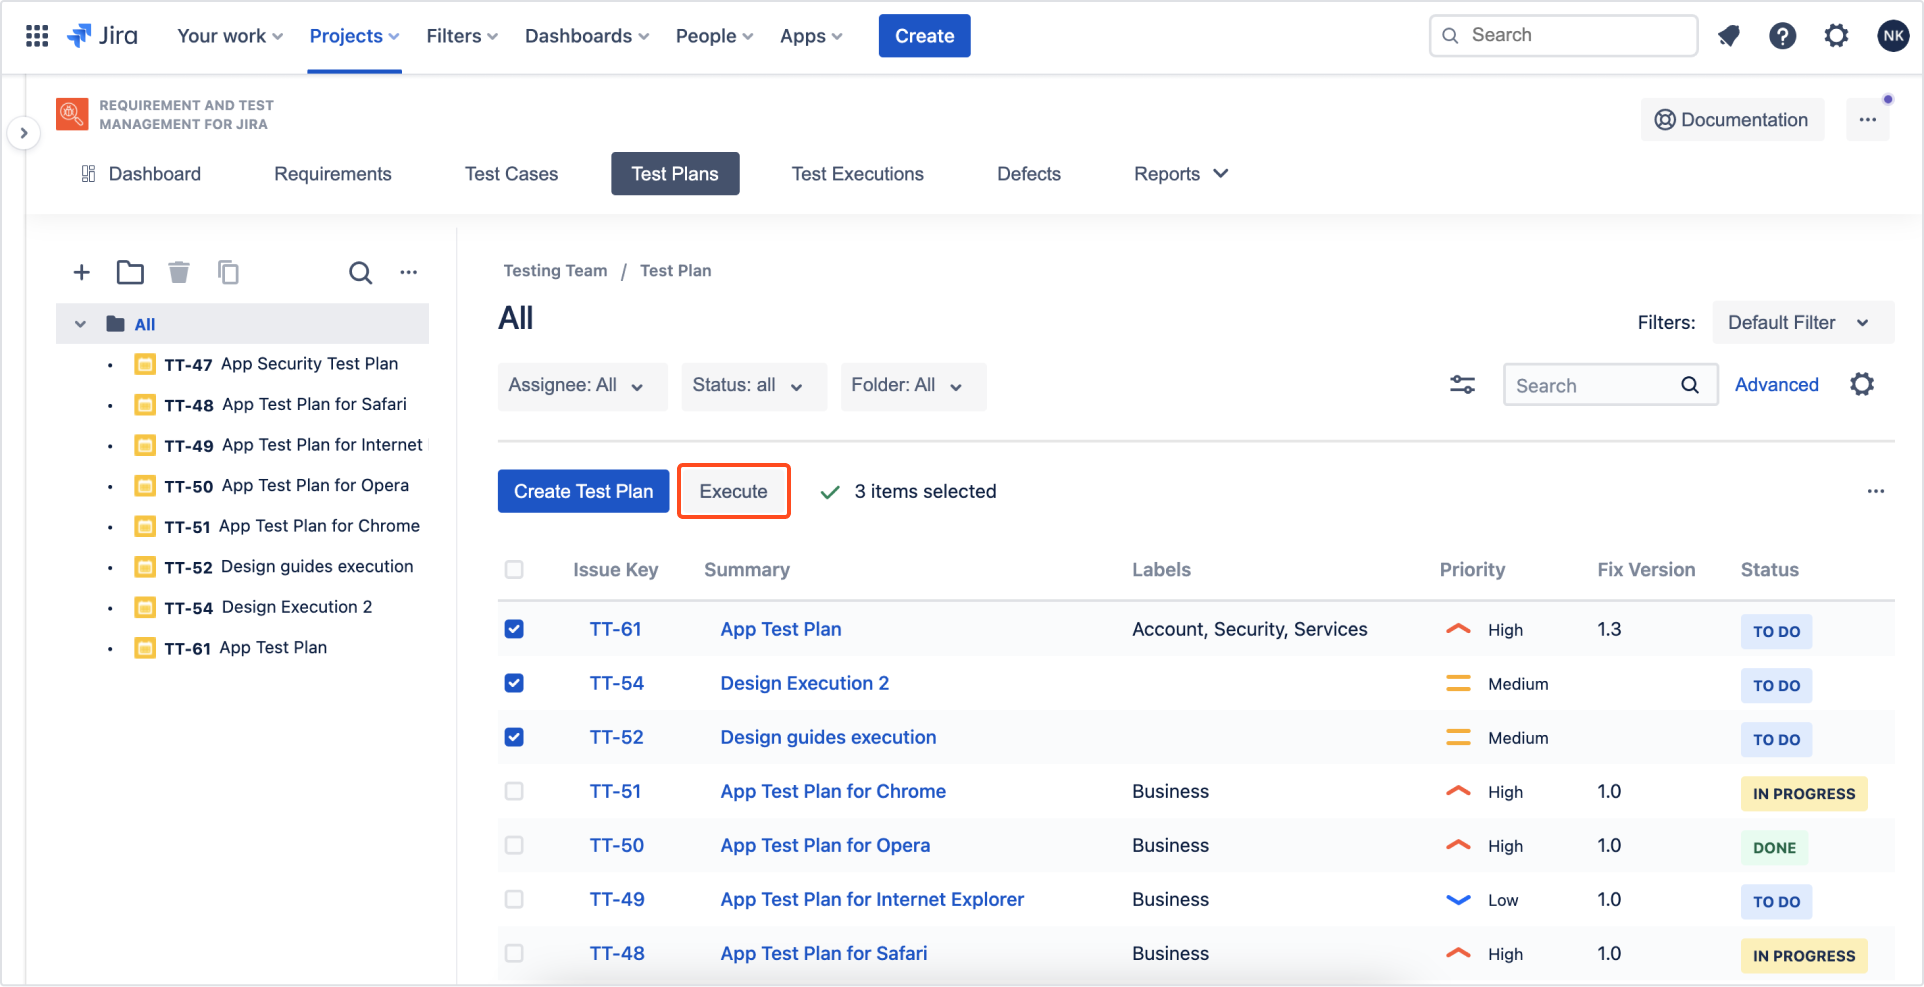 Execute Test Plan with Requirements and Test Management for Jira app